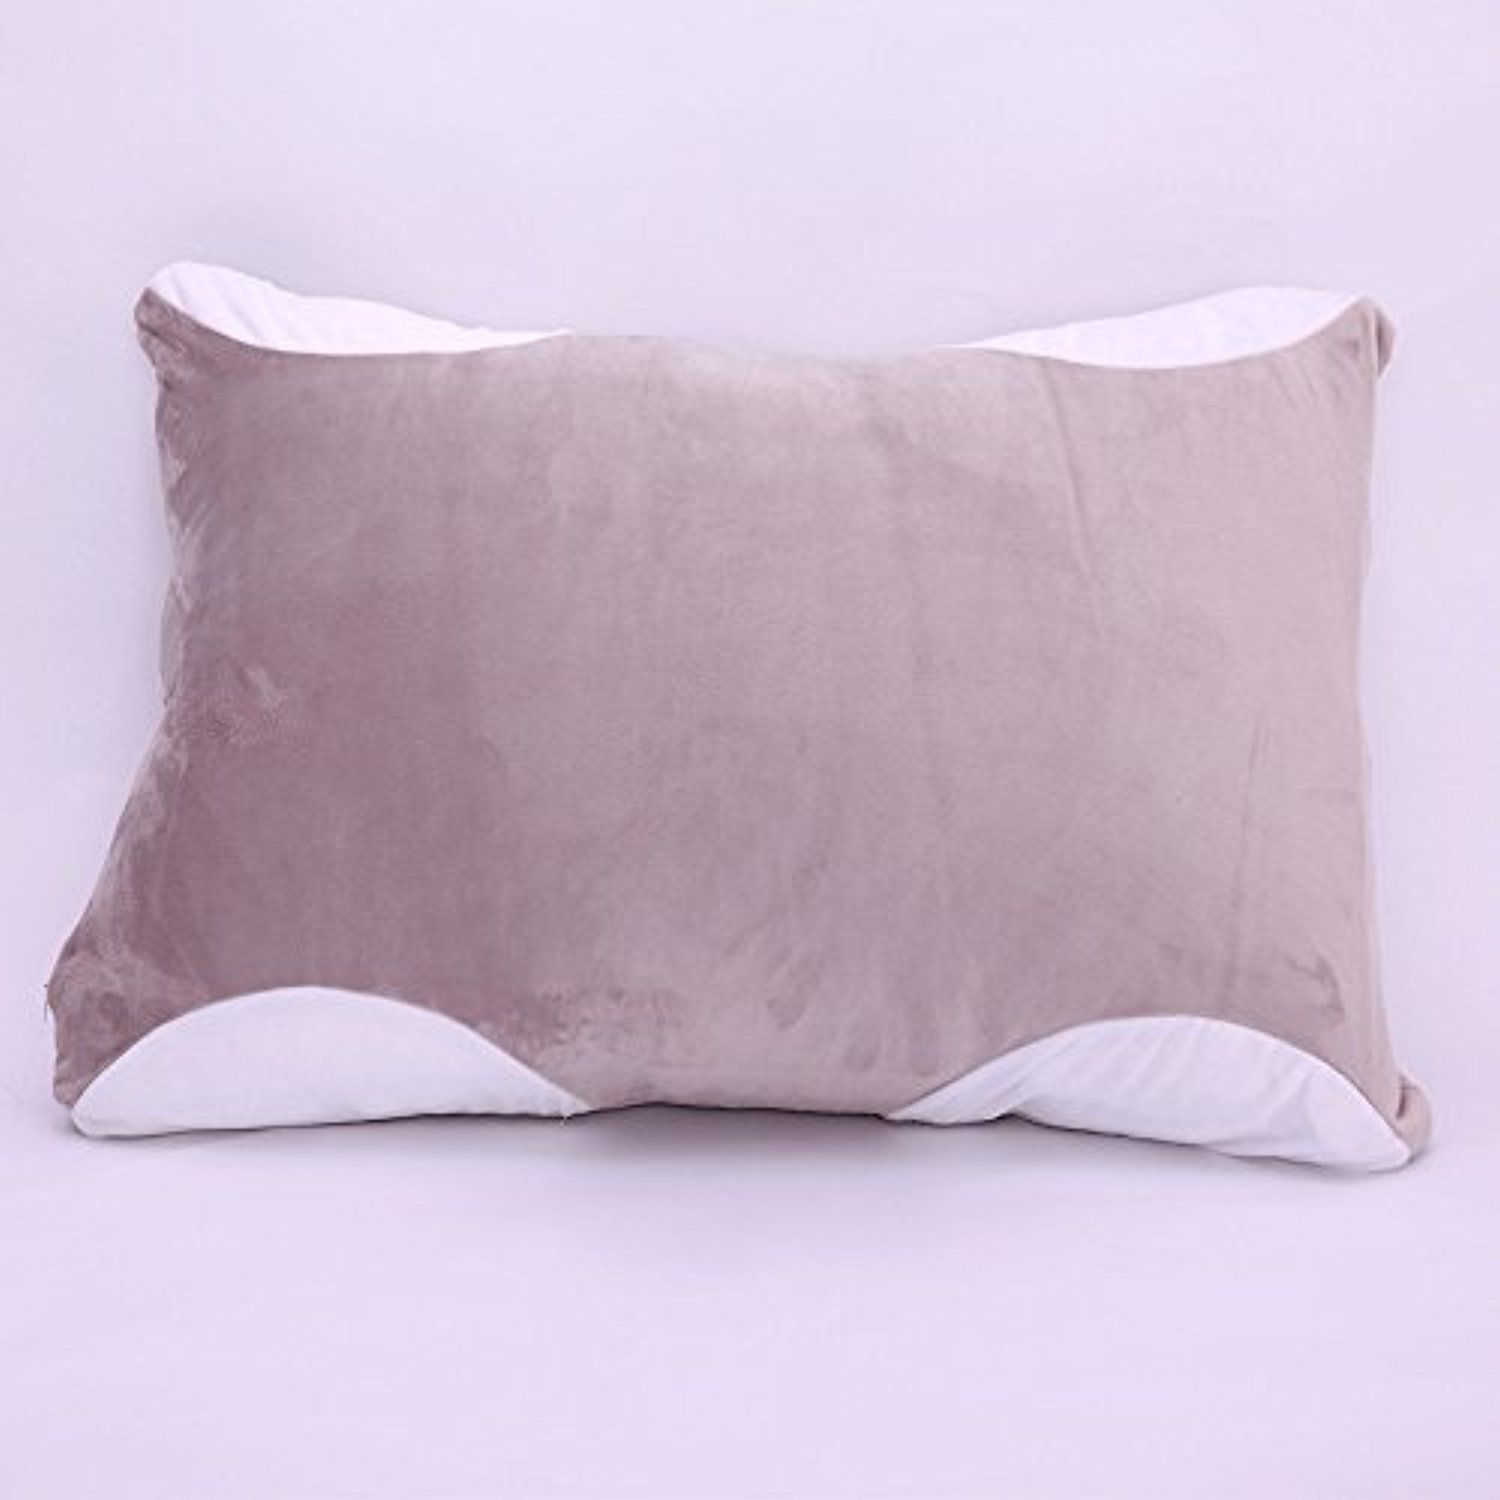 Dust Mite Pillow Covers Prepossessing Btwzm 2 Pack Luxury Zippered Queen Pillow Protector Covers  Unique Inspiration Design